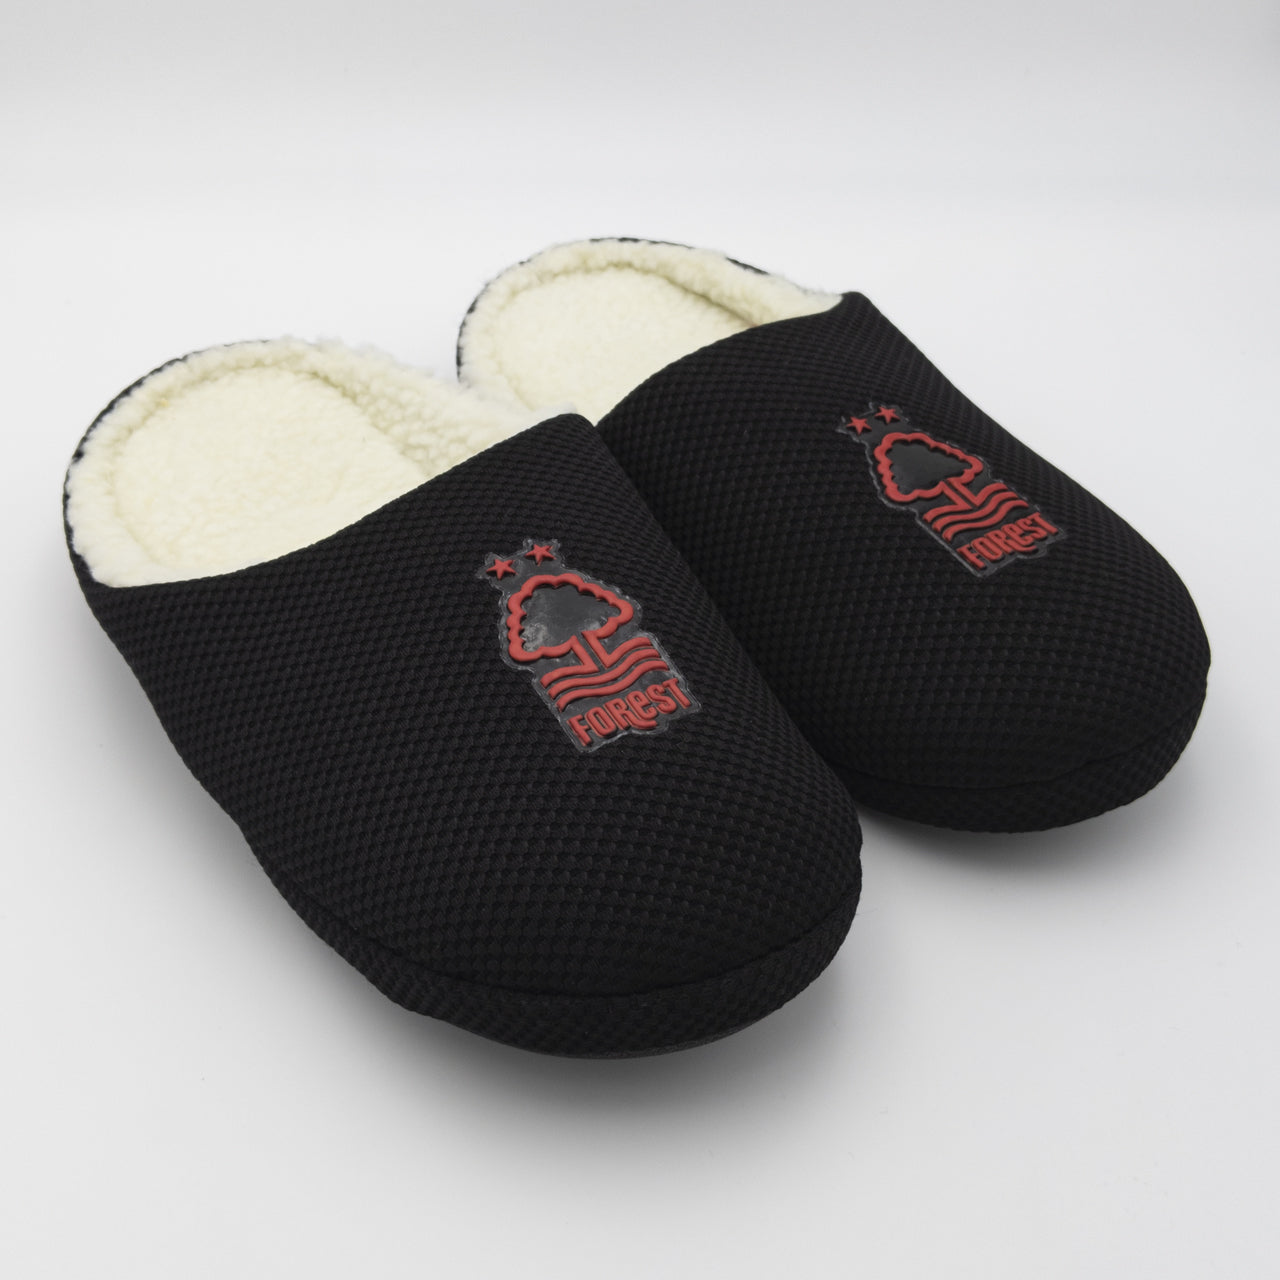 NFFC Men's Slippers